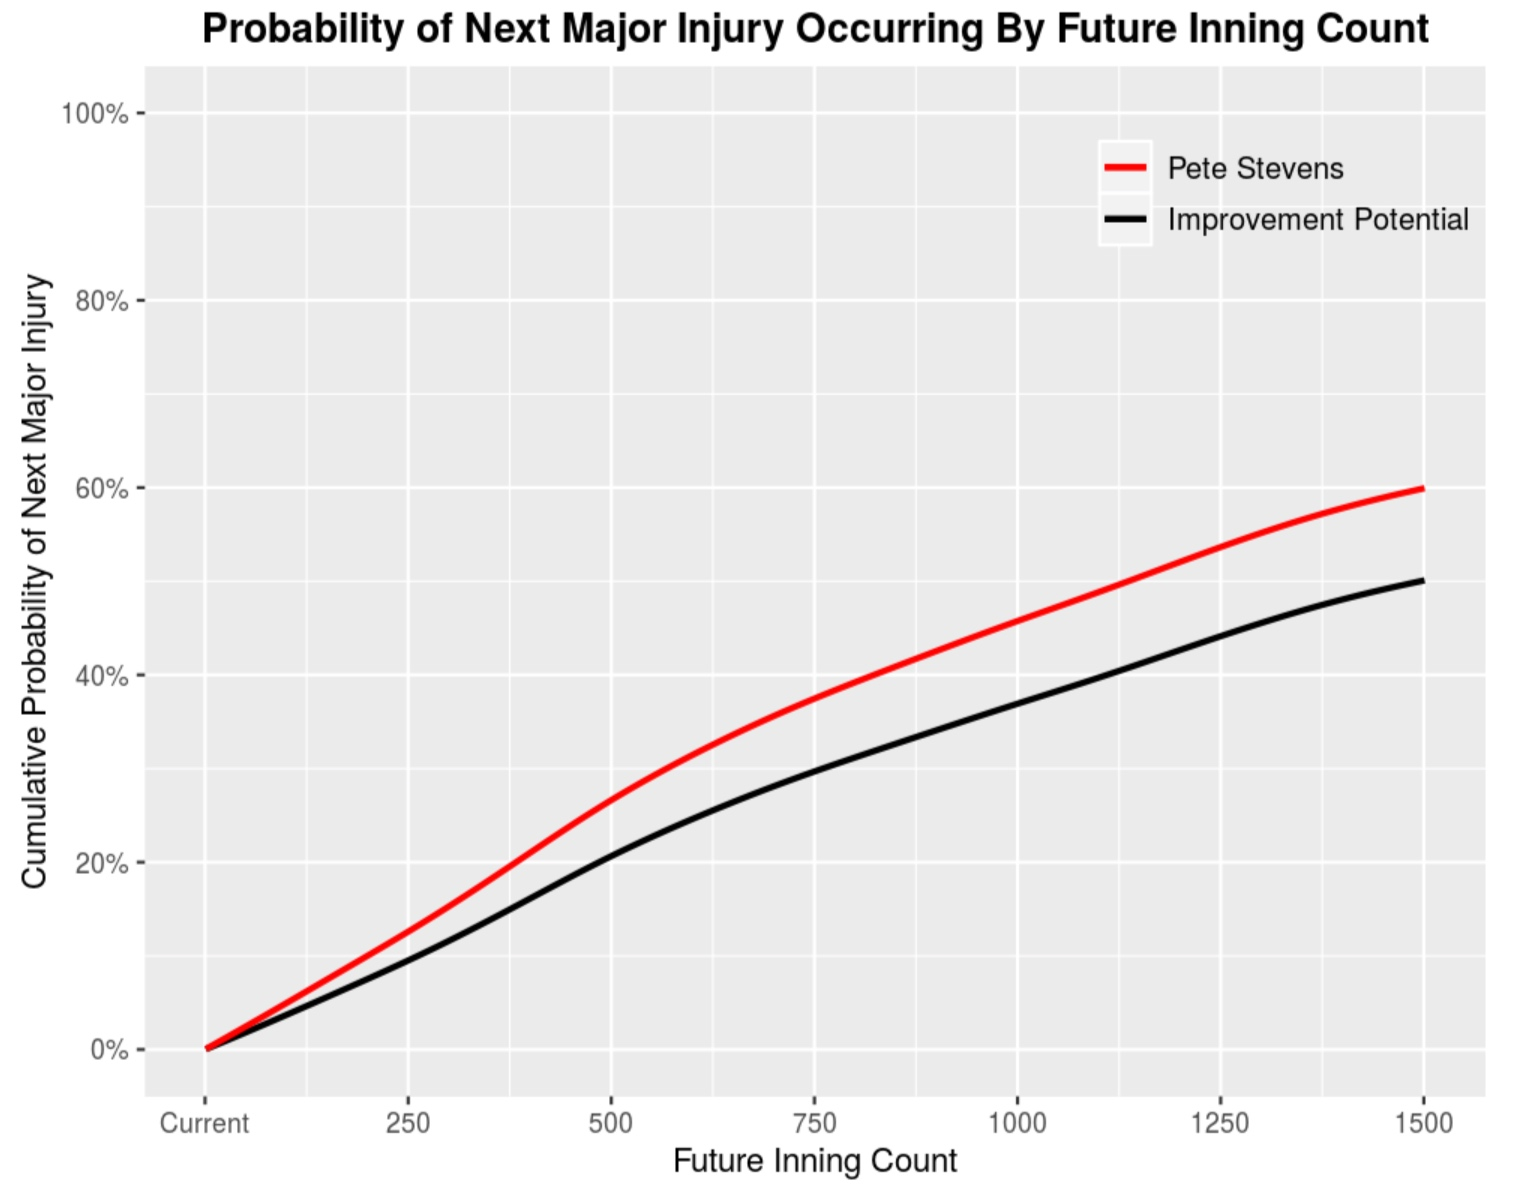 Improvement in DVS Score - What would happen to a pitcher's probability of injury if they were to improve the aspect of their pitching delivery (DVS Score)? The built-in toggle slider allows an organization to visually see the changes as a pitcher's DVS Score improves.